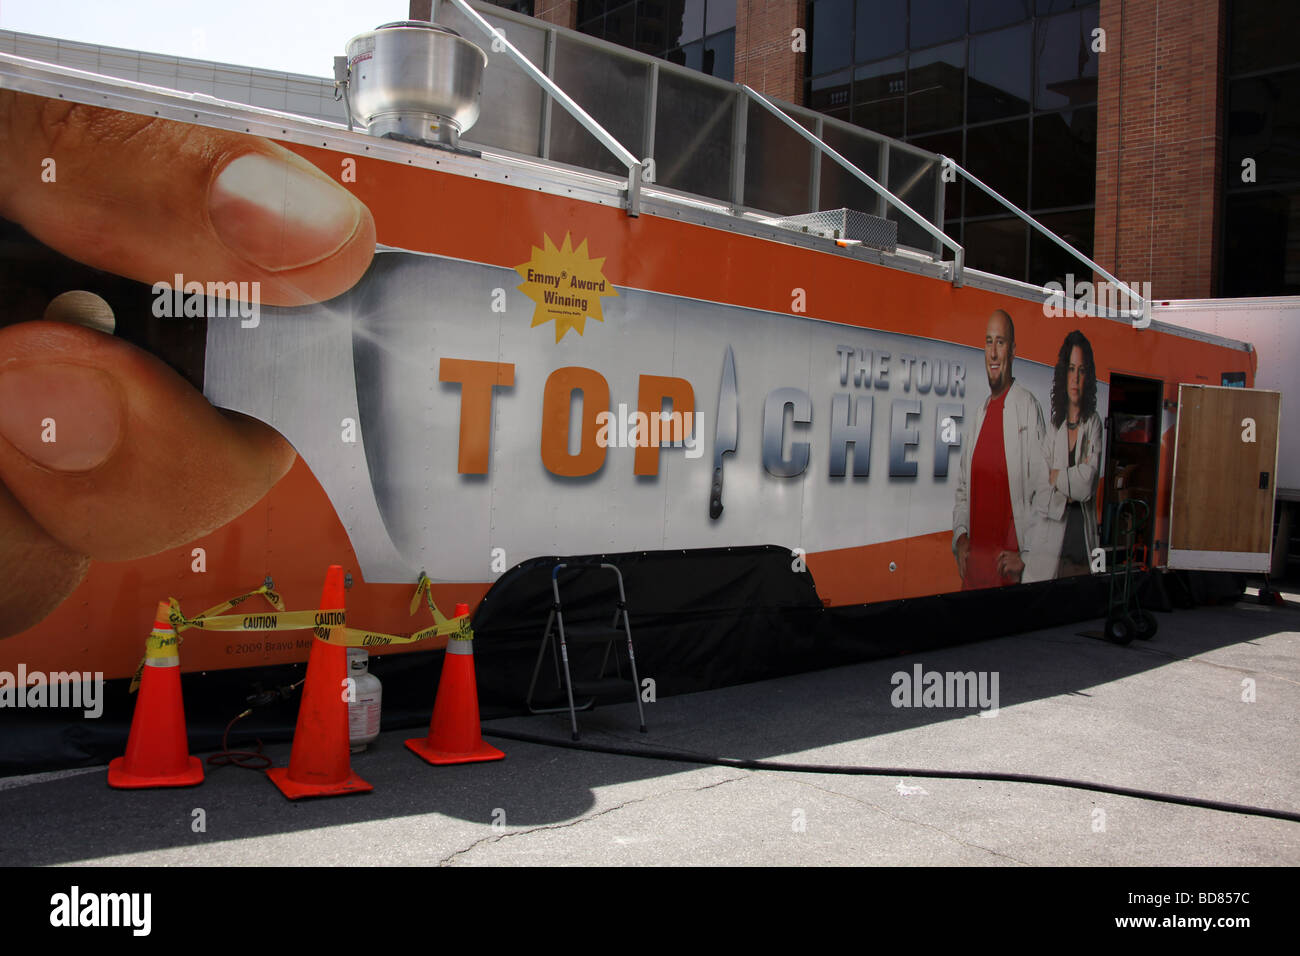 Bravo Top Chef Tour Van parked at the White Plains, New York, Farmers Market - Stock Image